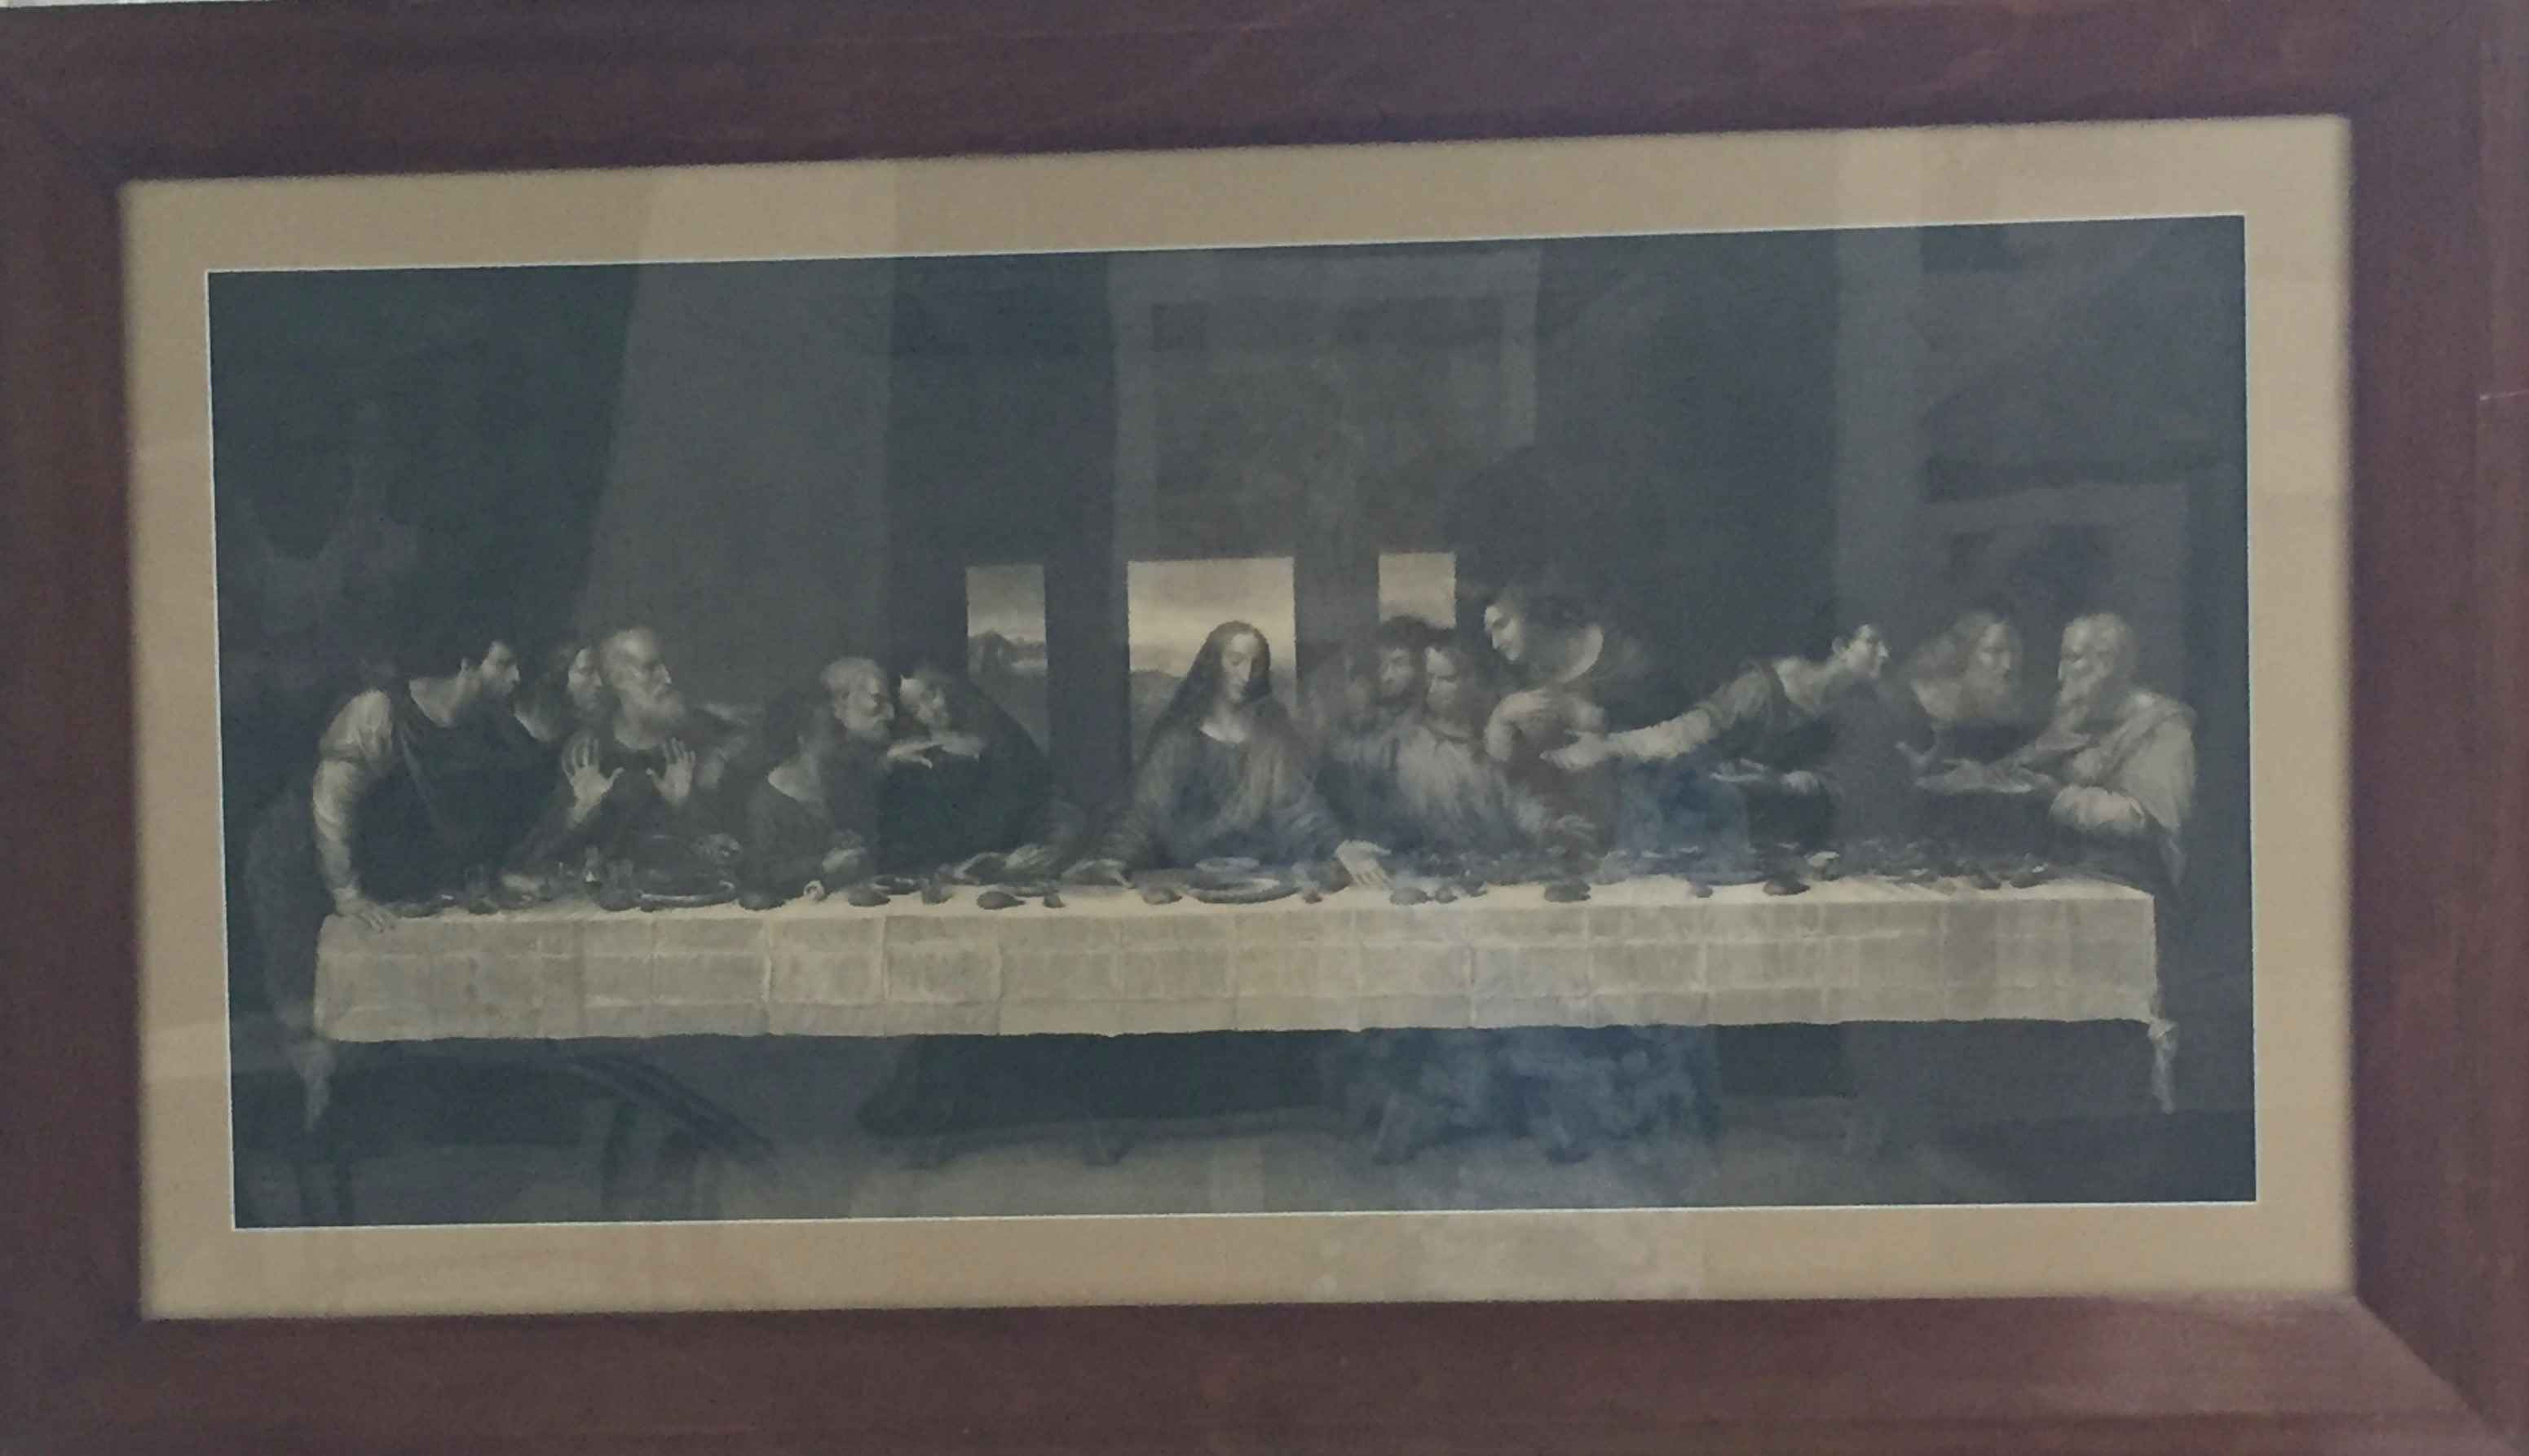 Last Supper by  After Raphael Morghen - Masterpiece Online